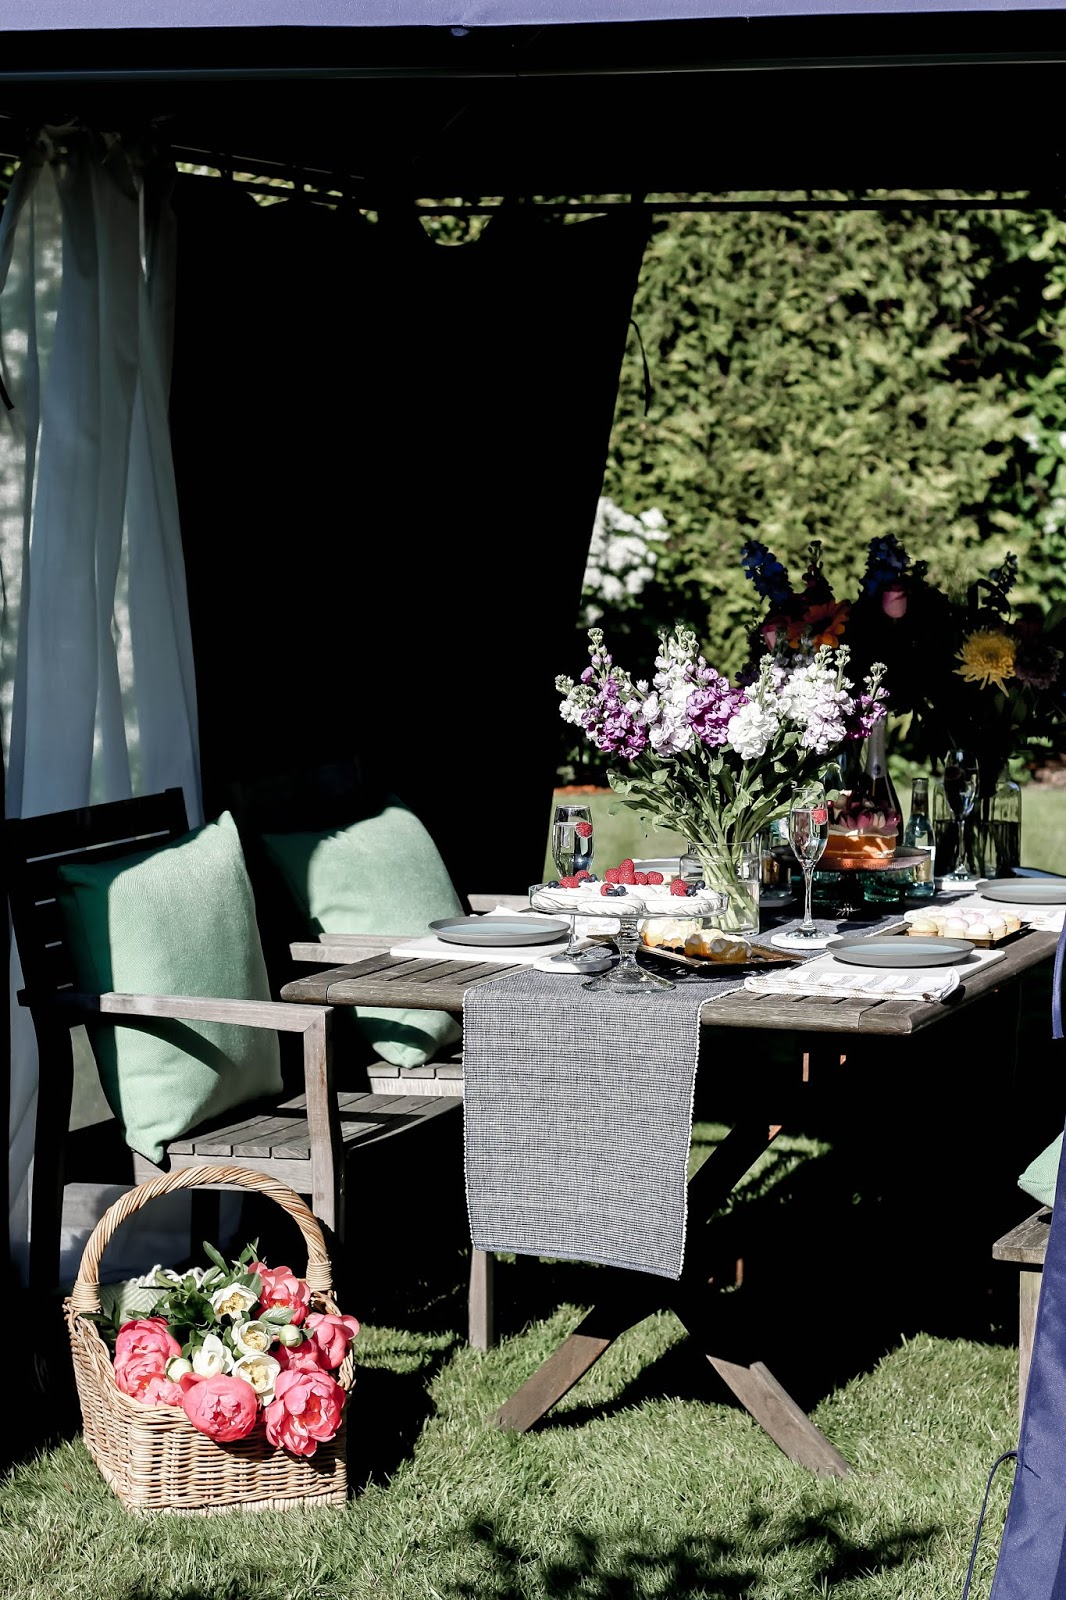 Summer Al Fresco Dining Afternoon Tea Outdoors